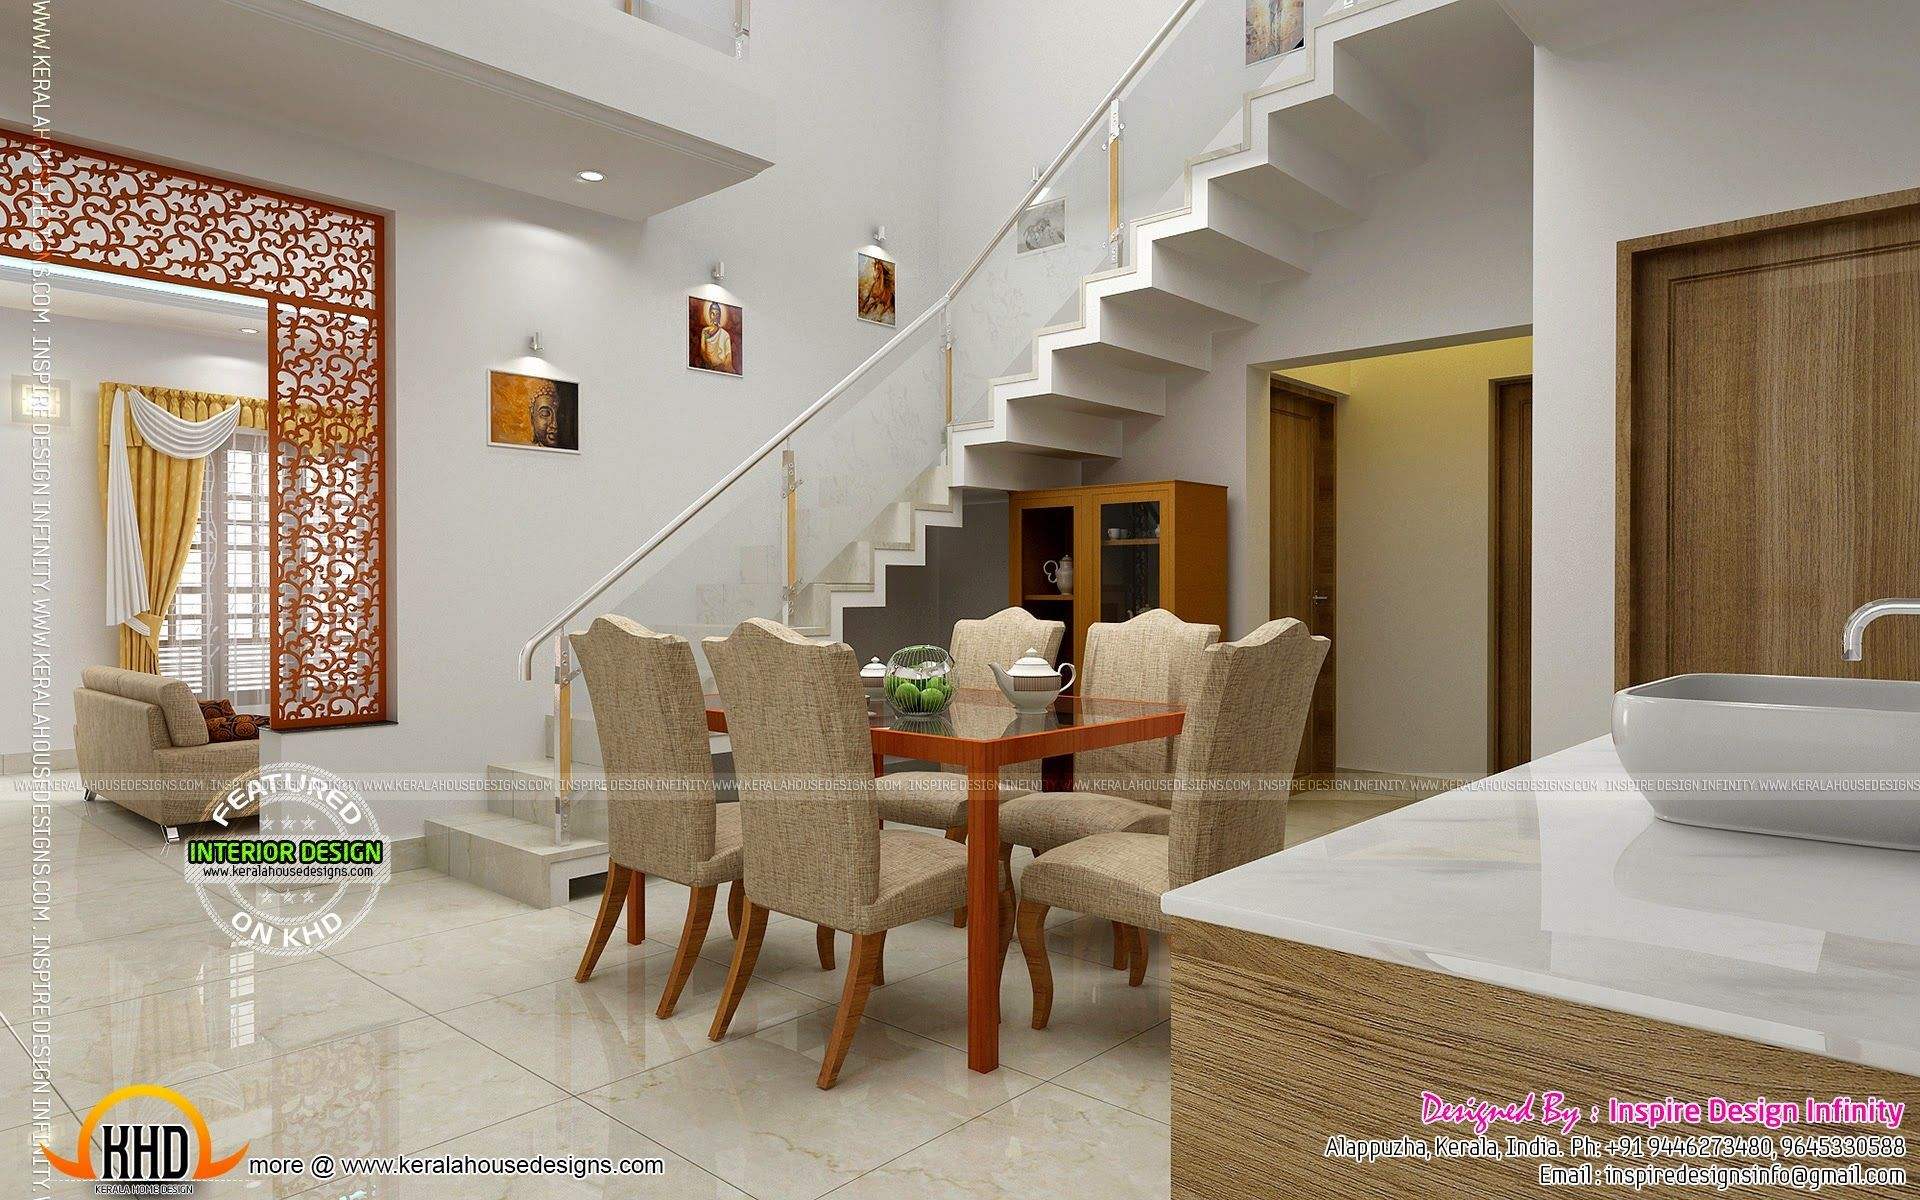 26 Stunning Living Room Designs Small Spaces Kerala In 2021 Interior Design Dining Room Dining Interior Dining Room Design Kerala home interior design dining room